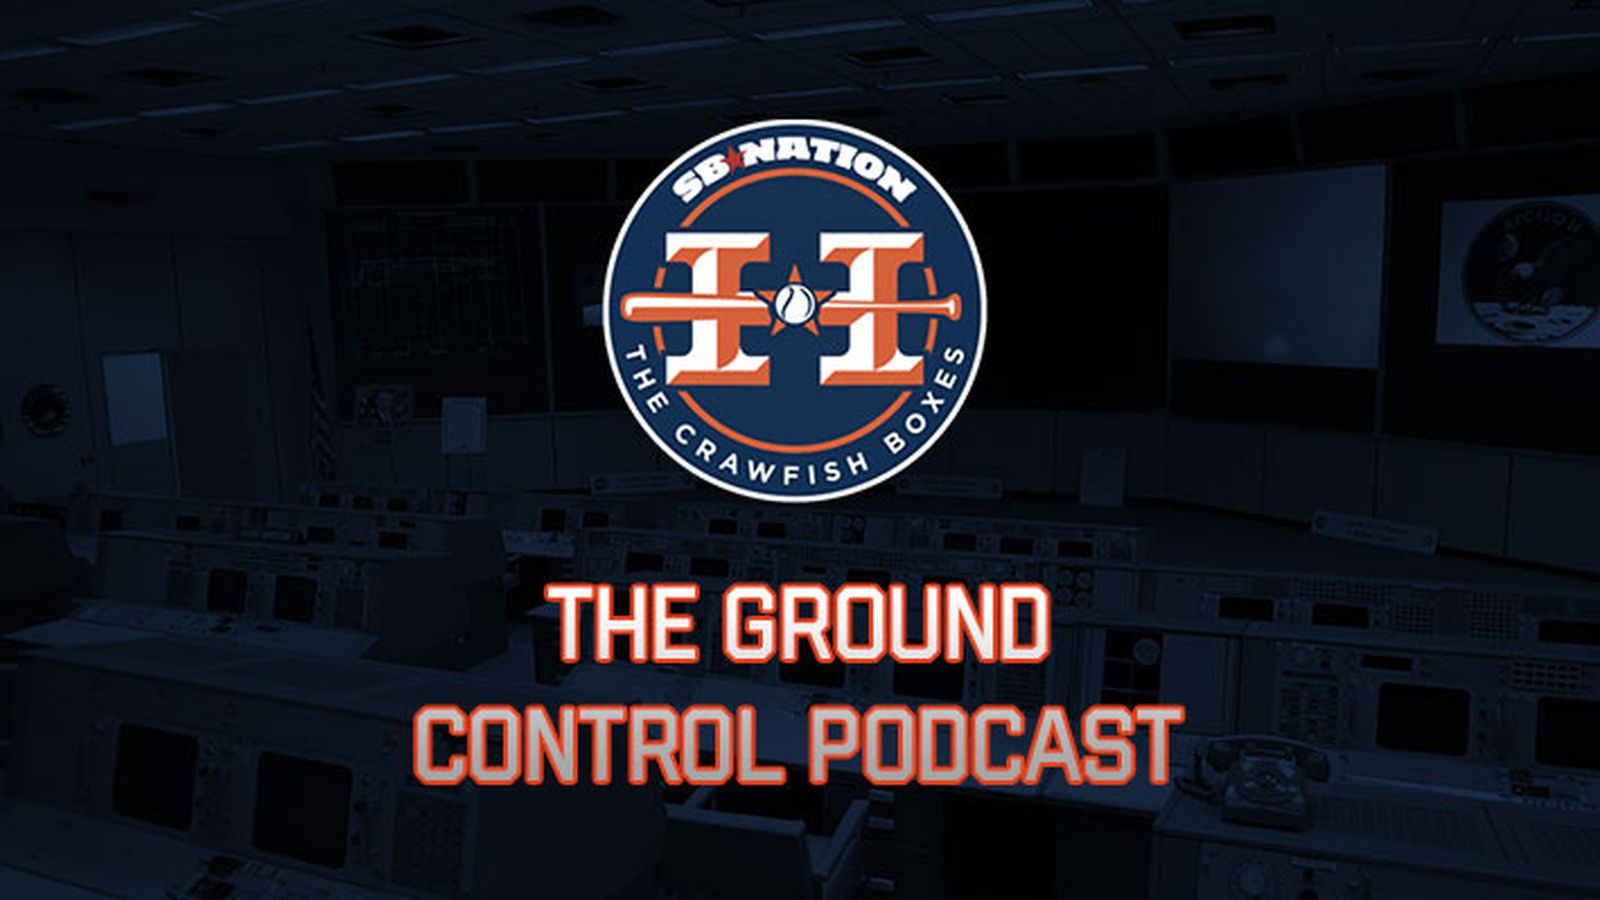 Ground_control_podcast.0.0